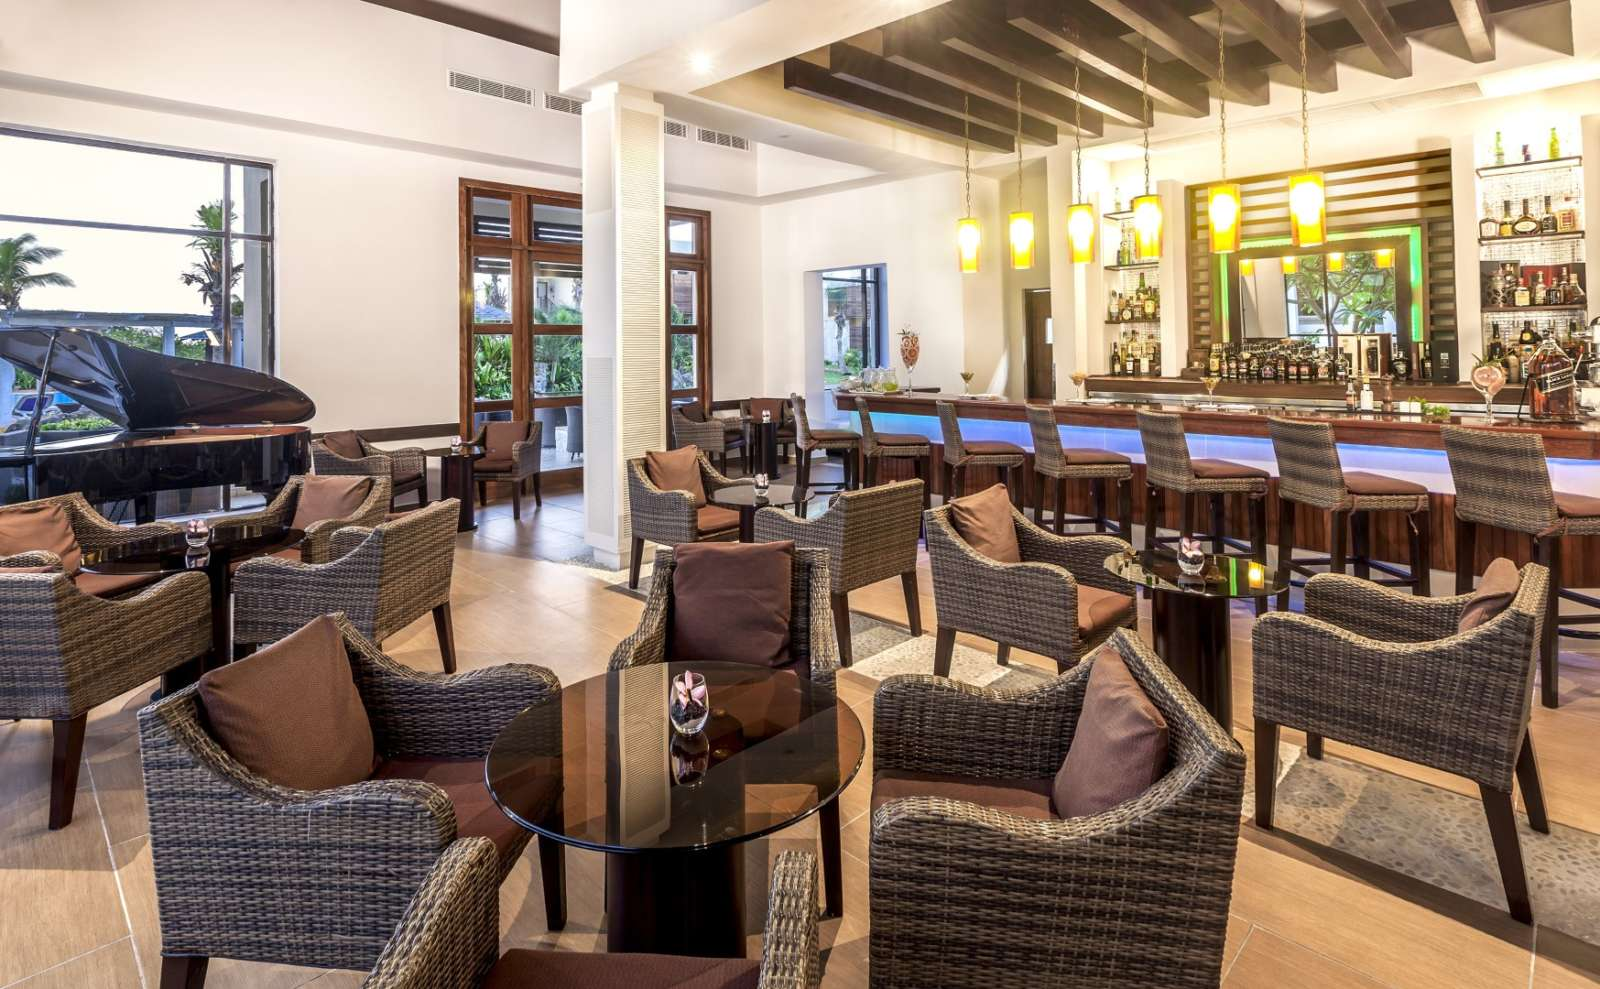 Piano bar at Melia Buenavista